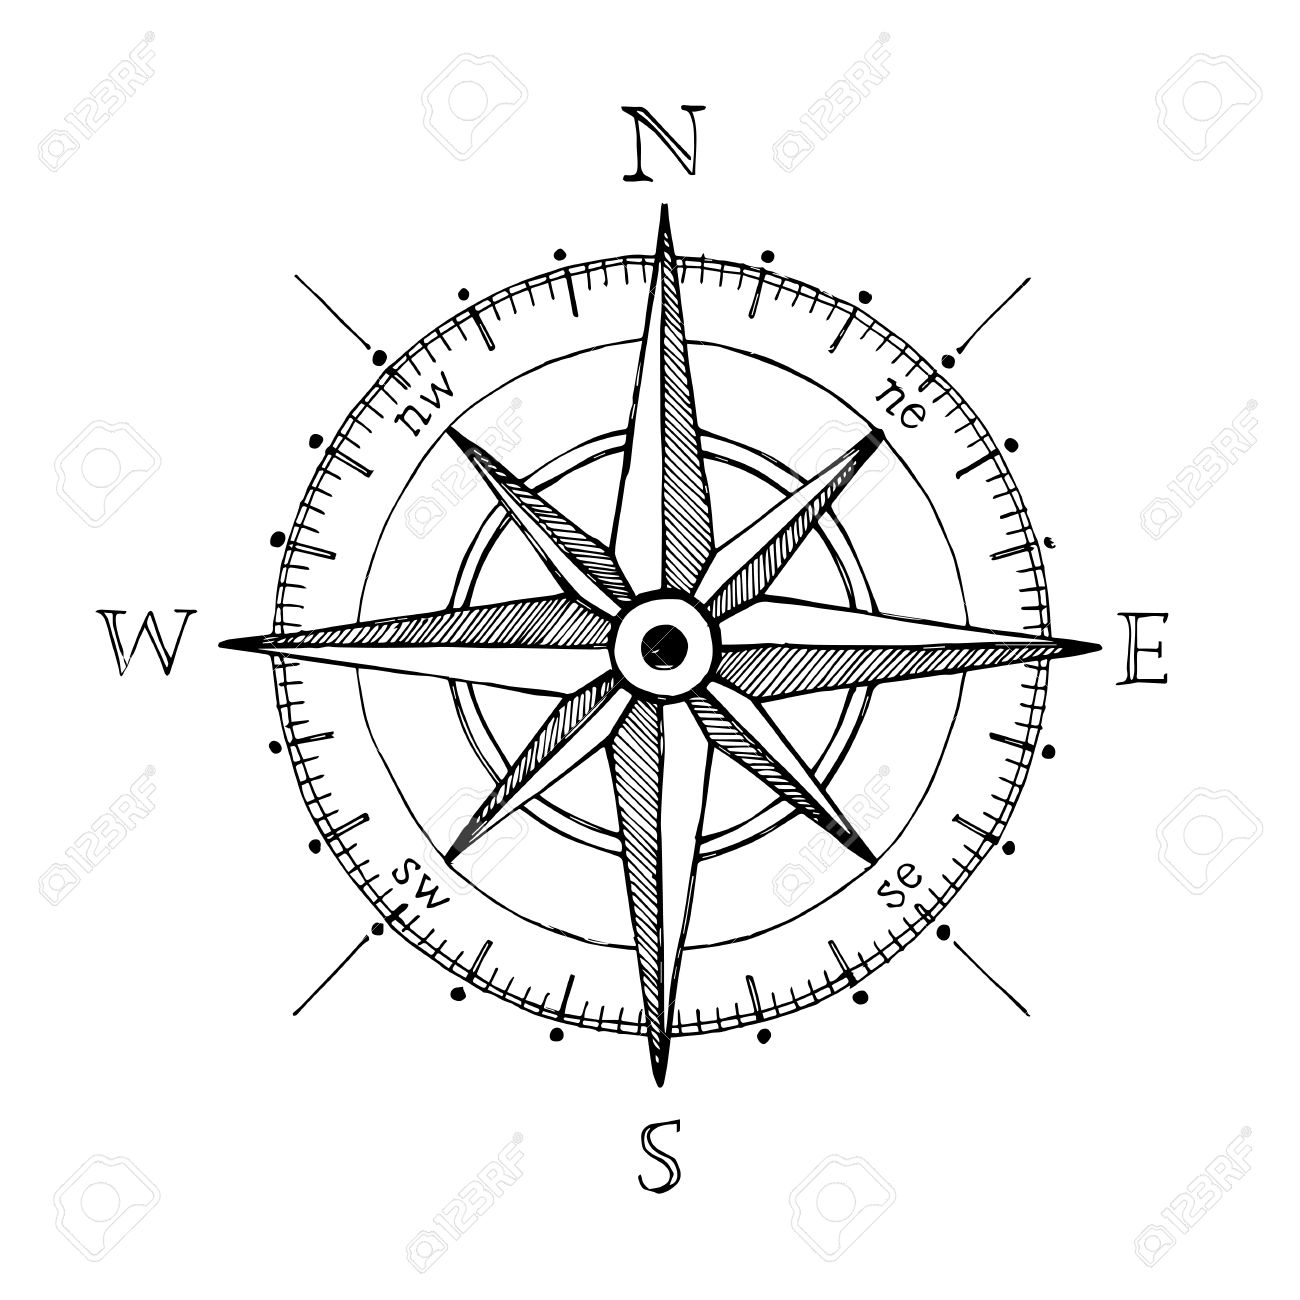 Drawn compass line drawing Compass Google Pinterest design Search